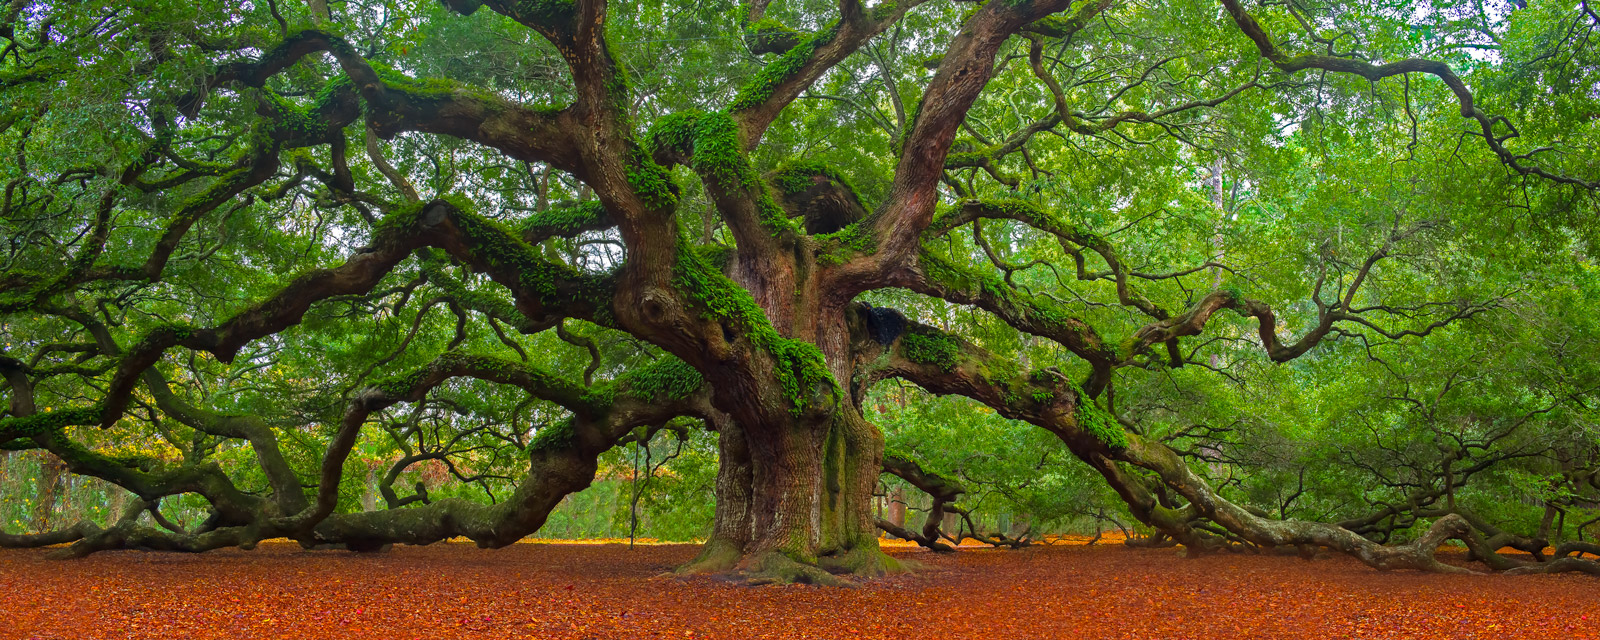 A Limited Edition, Fine Art photograph of Angel Oak Tree, a huge sprawling oak tree with its limbs reaching out wide in Charleston...